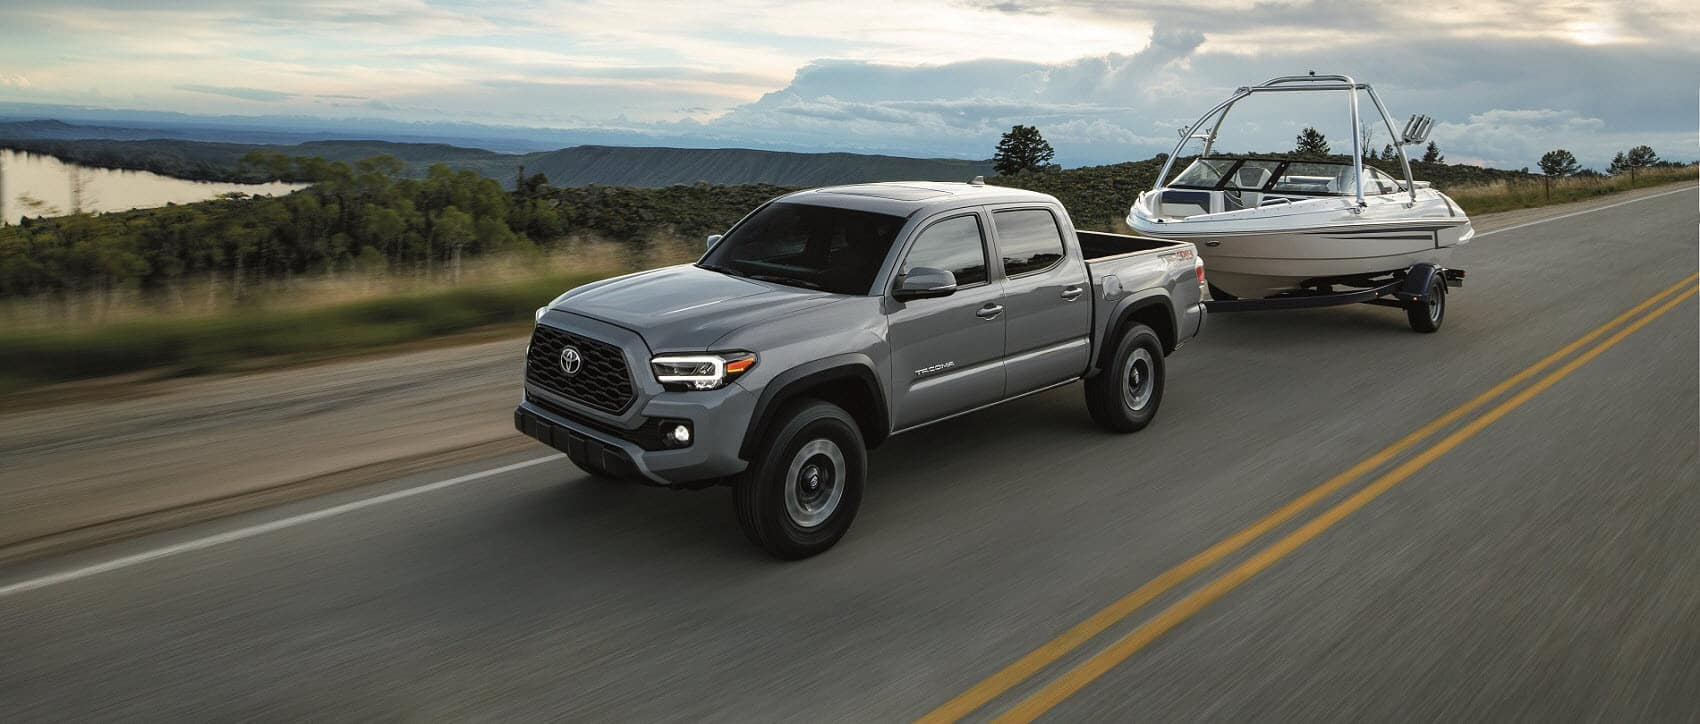 Toyota Tacoma Towing Power